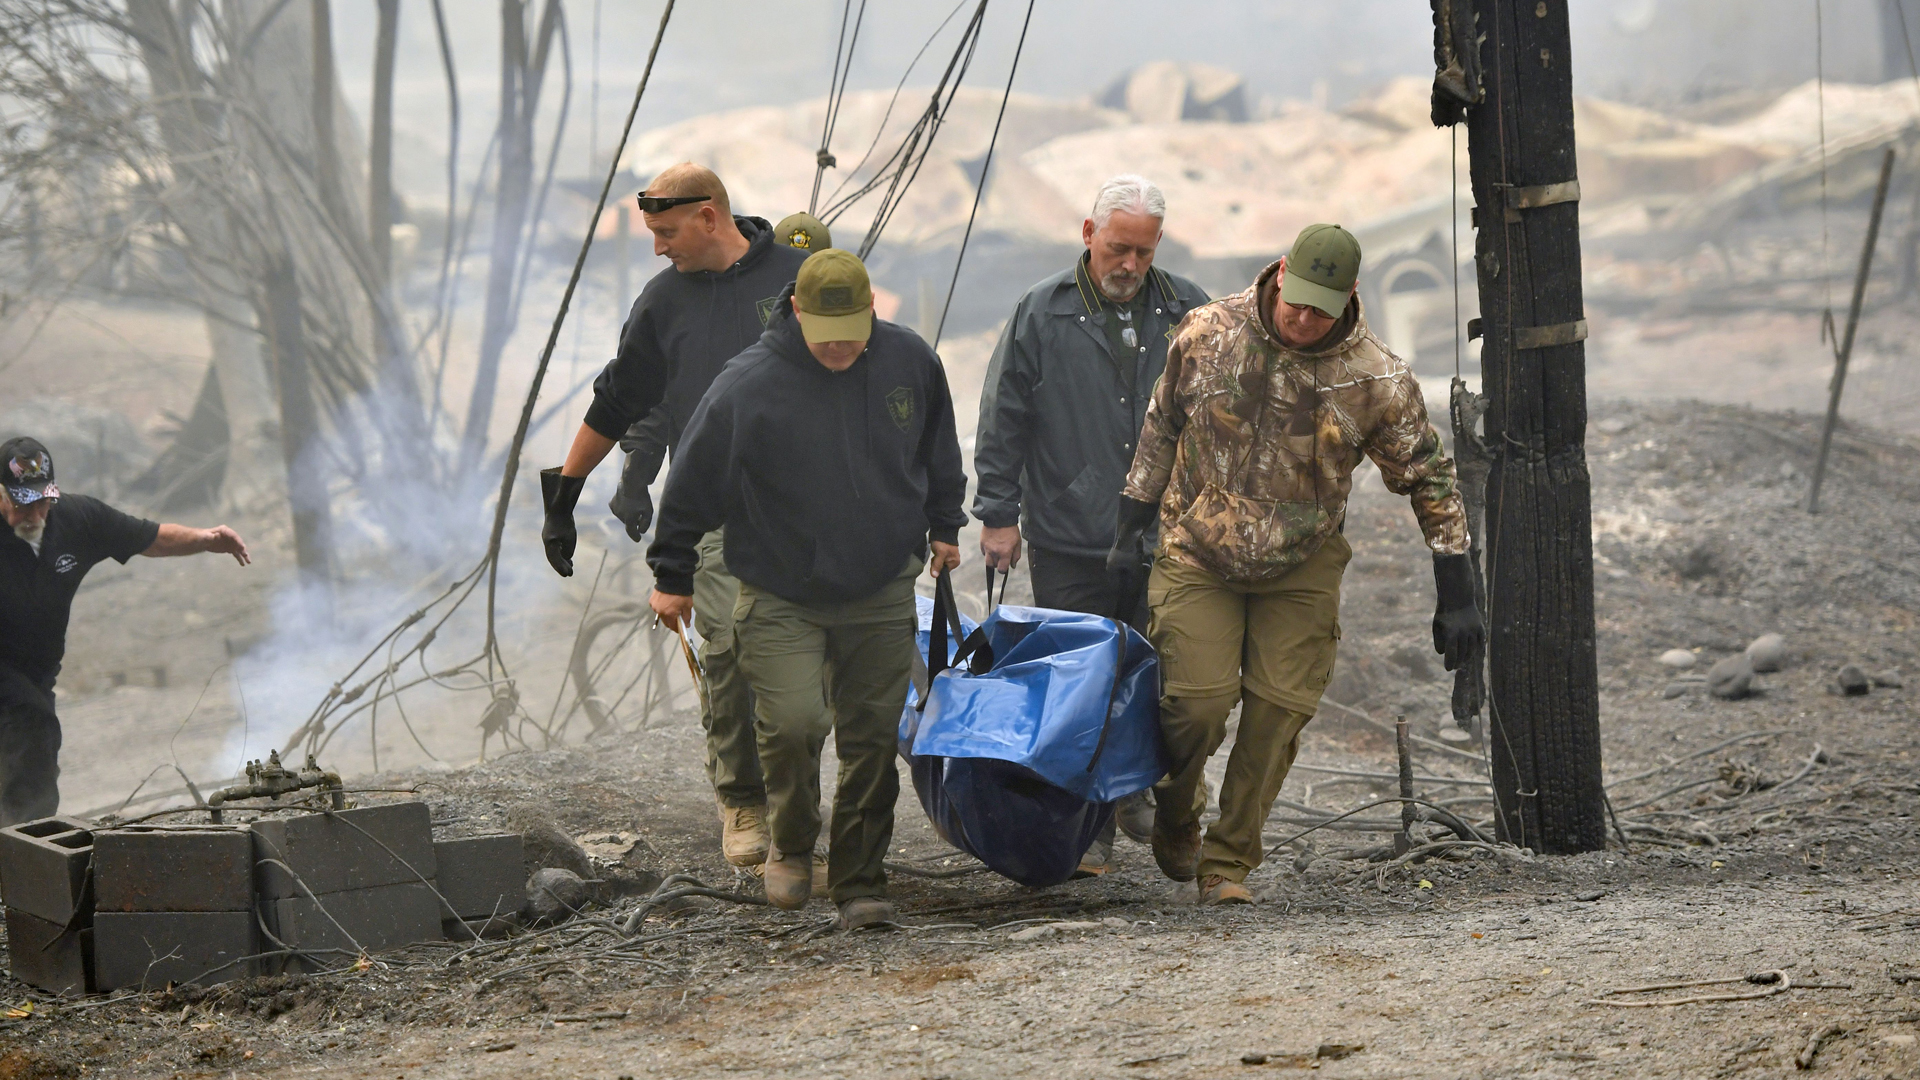 Yuba and Butte County Sheriff officers carry a body away from a burned residence in Paradise on November 10, 2018. (Credit: JOSH EDELSON/AFP/Getty Images)